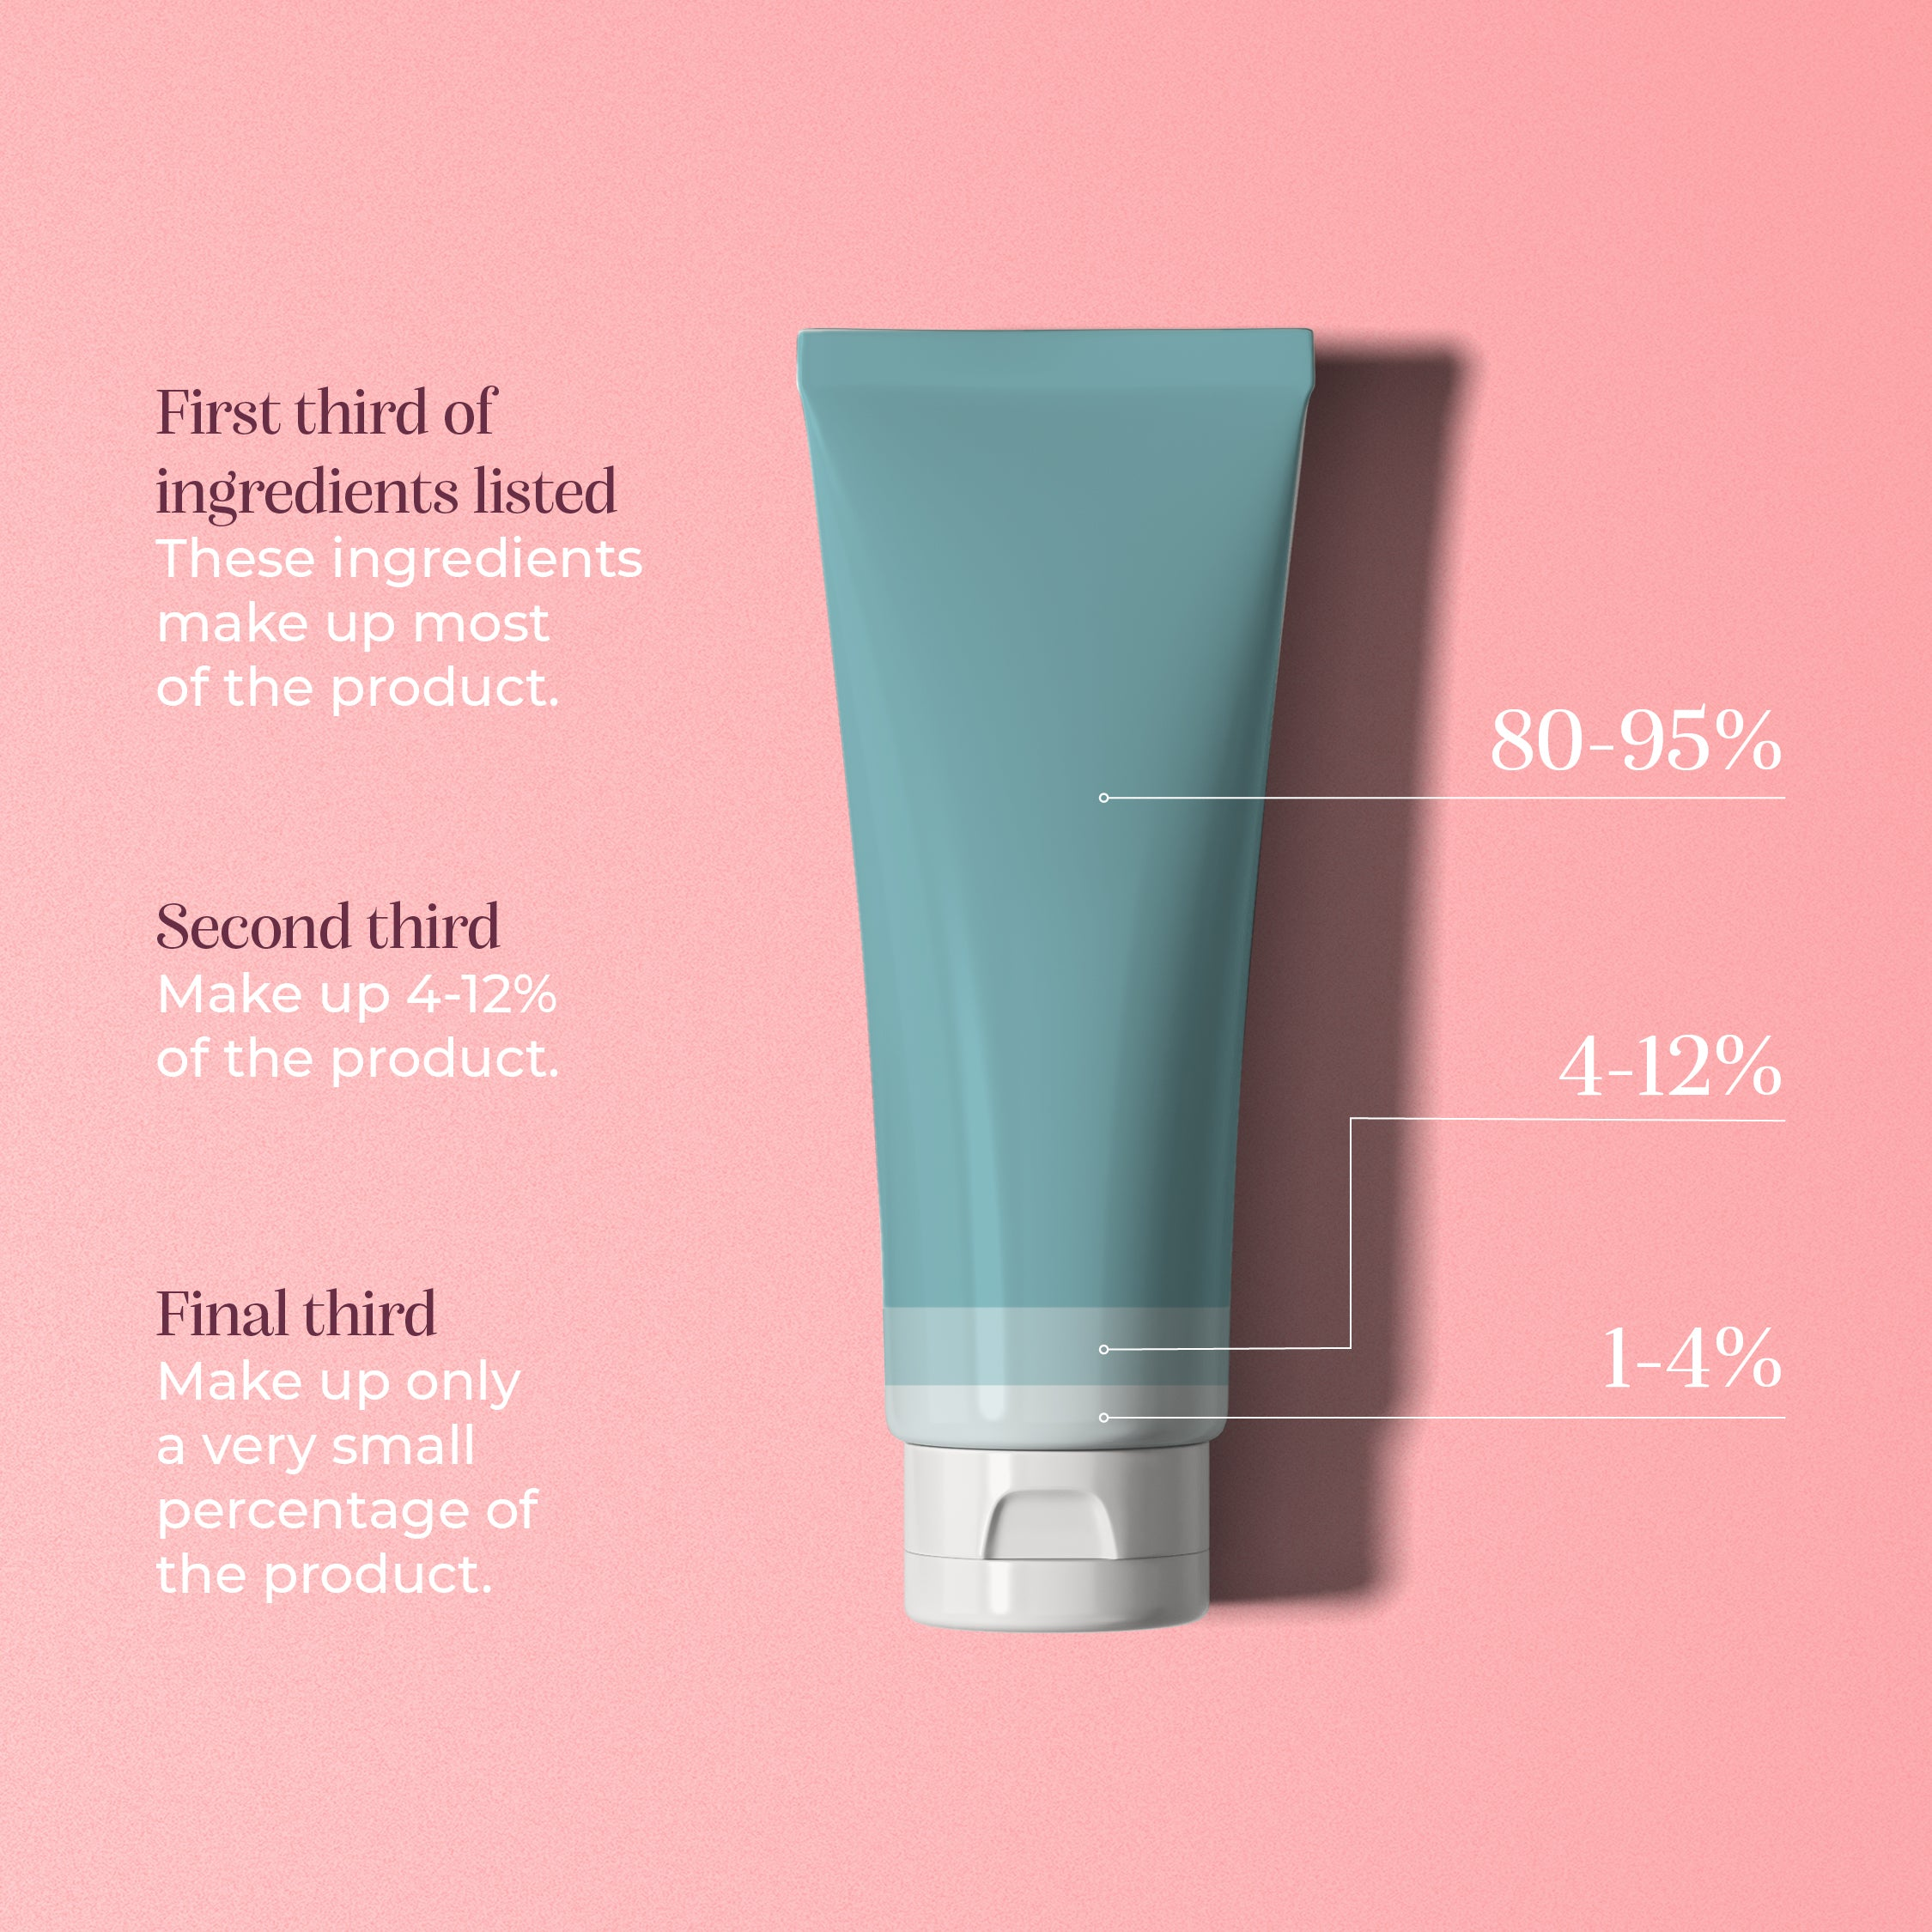 Check ingredients in cosmetics app